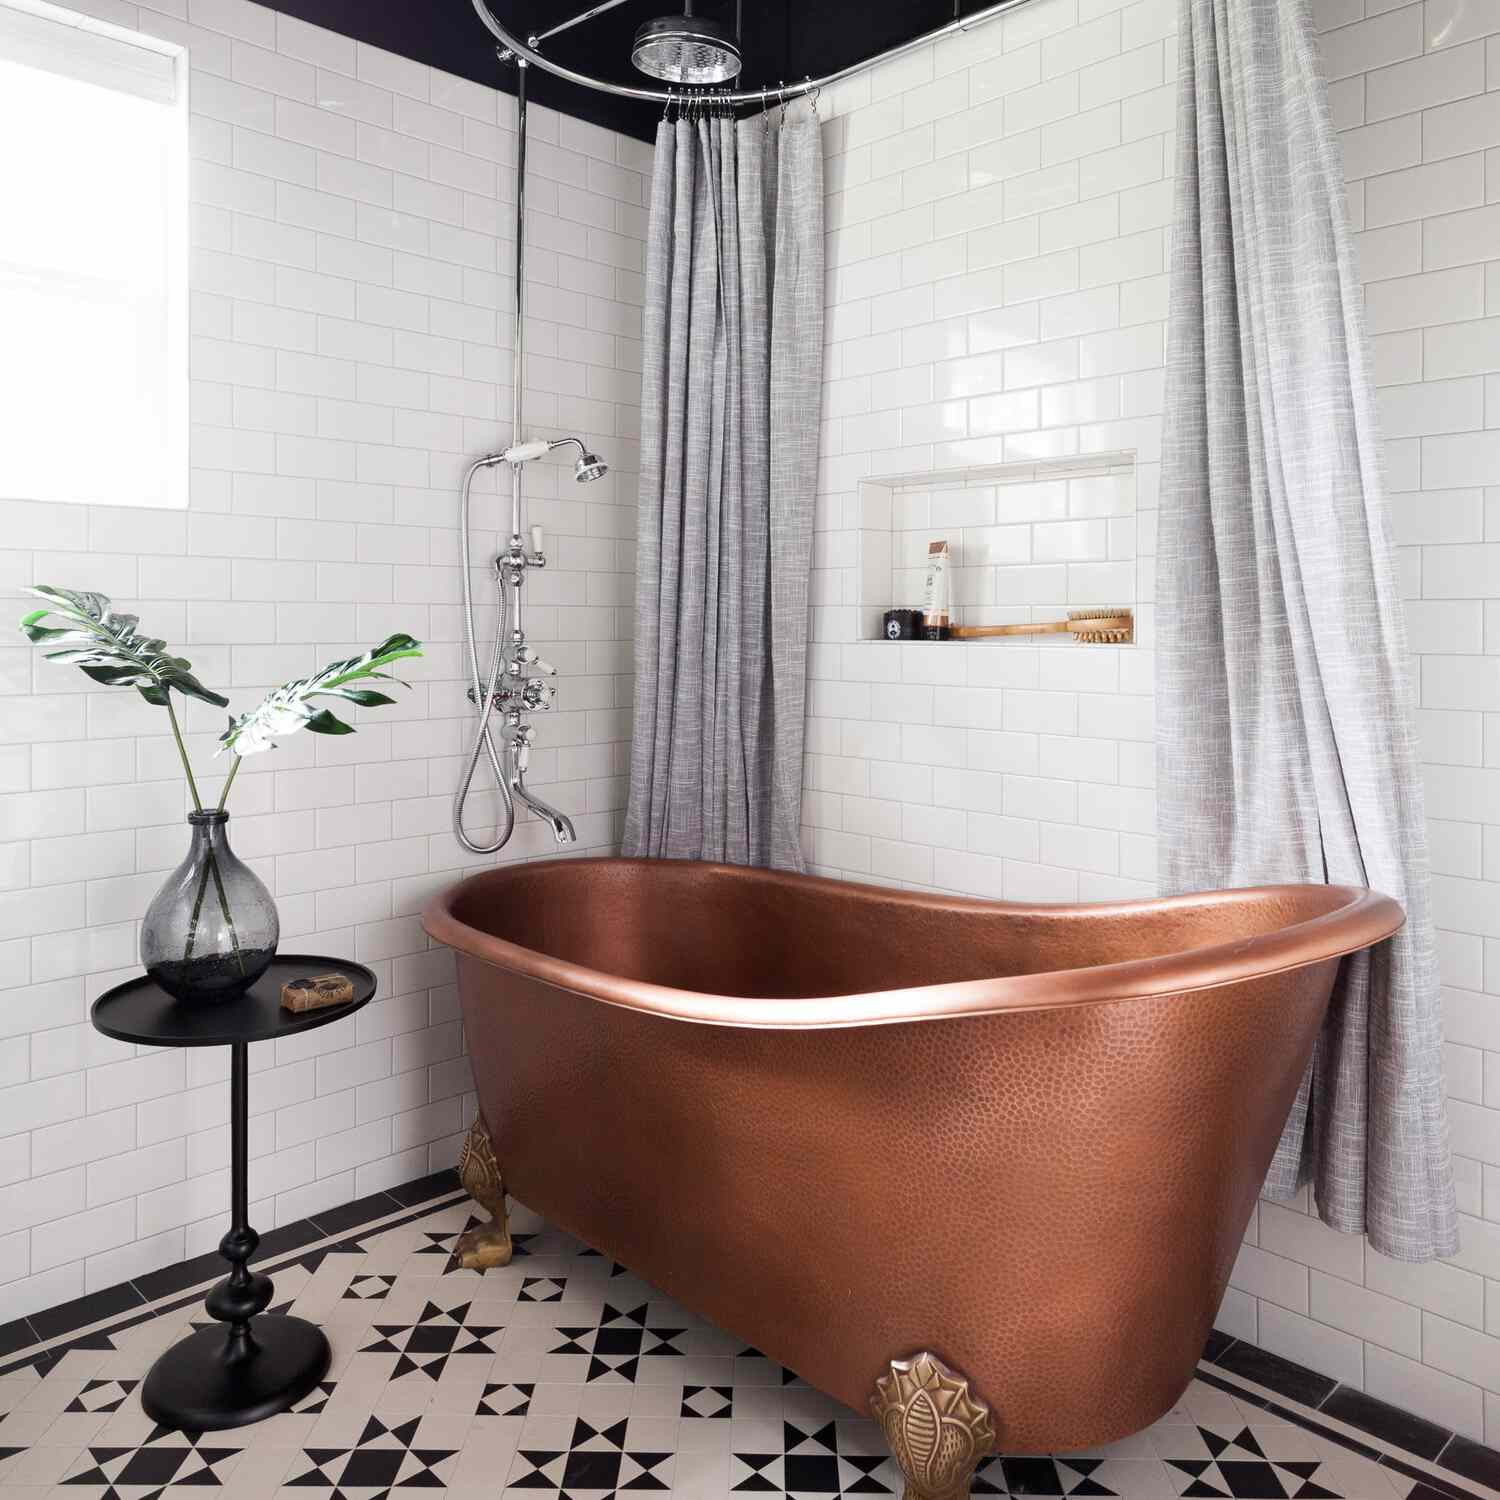 A bathroom with a rose gold clawfoot tub and a gray shower curtain